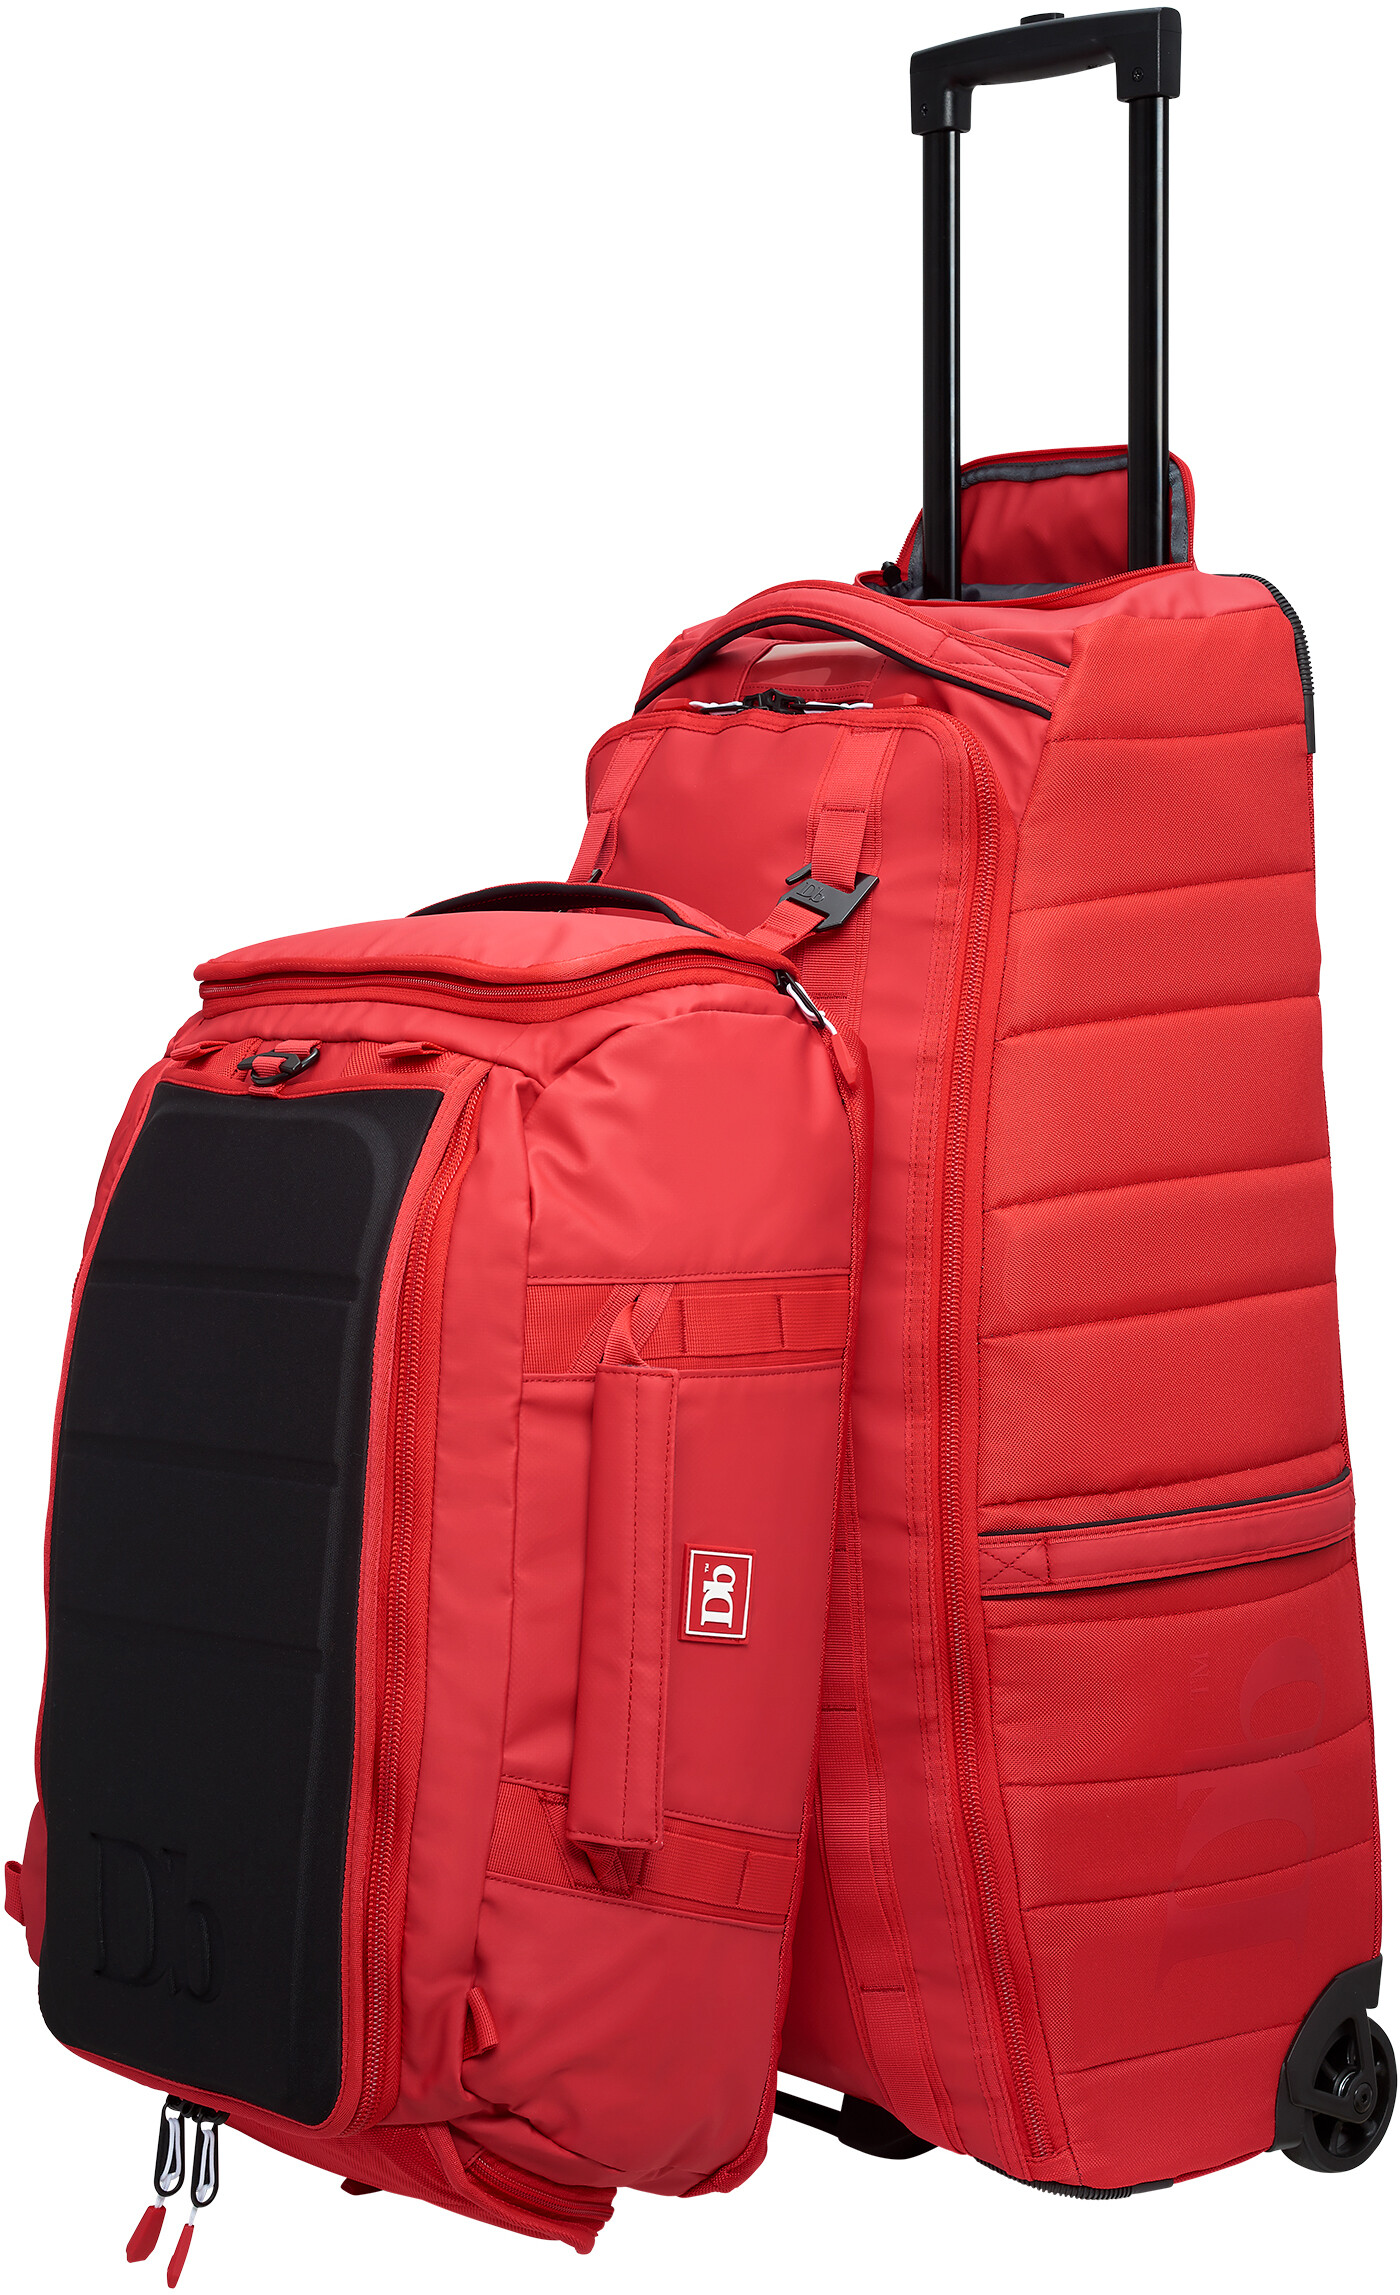 Douchebags The Carryall 40l Duffle Bag Scarlet Red   campz.at f1a2482544